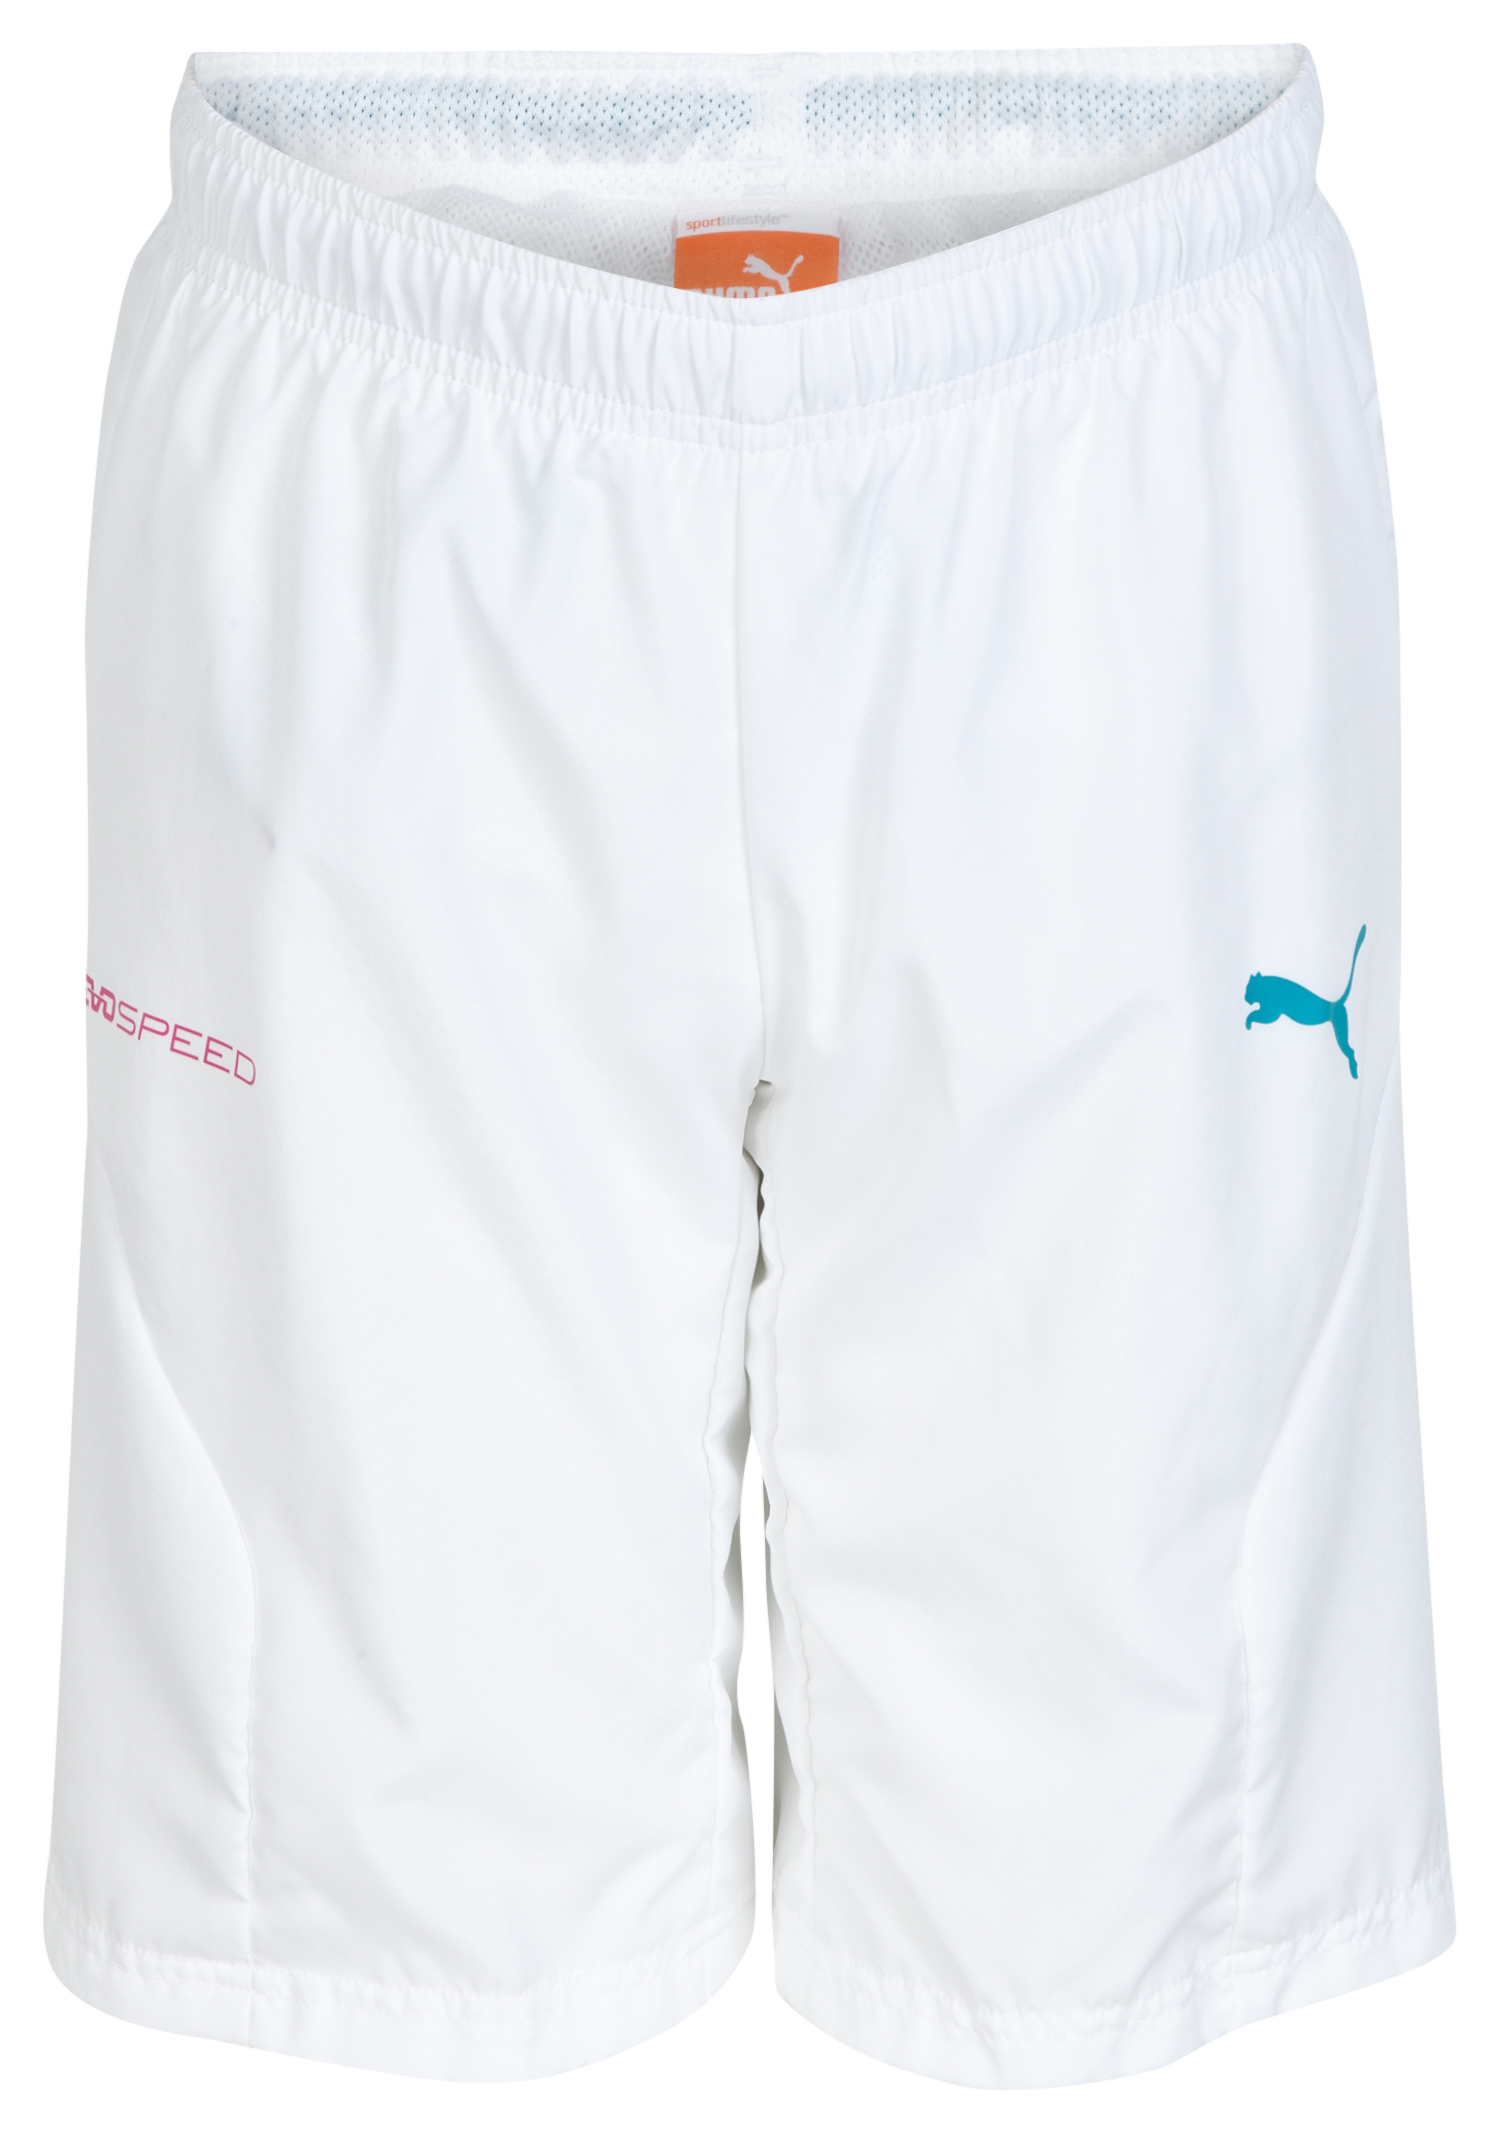 Puma evoSPEED TRICKS Woven Shorts